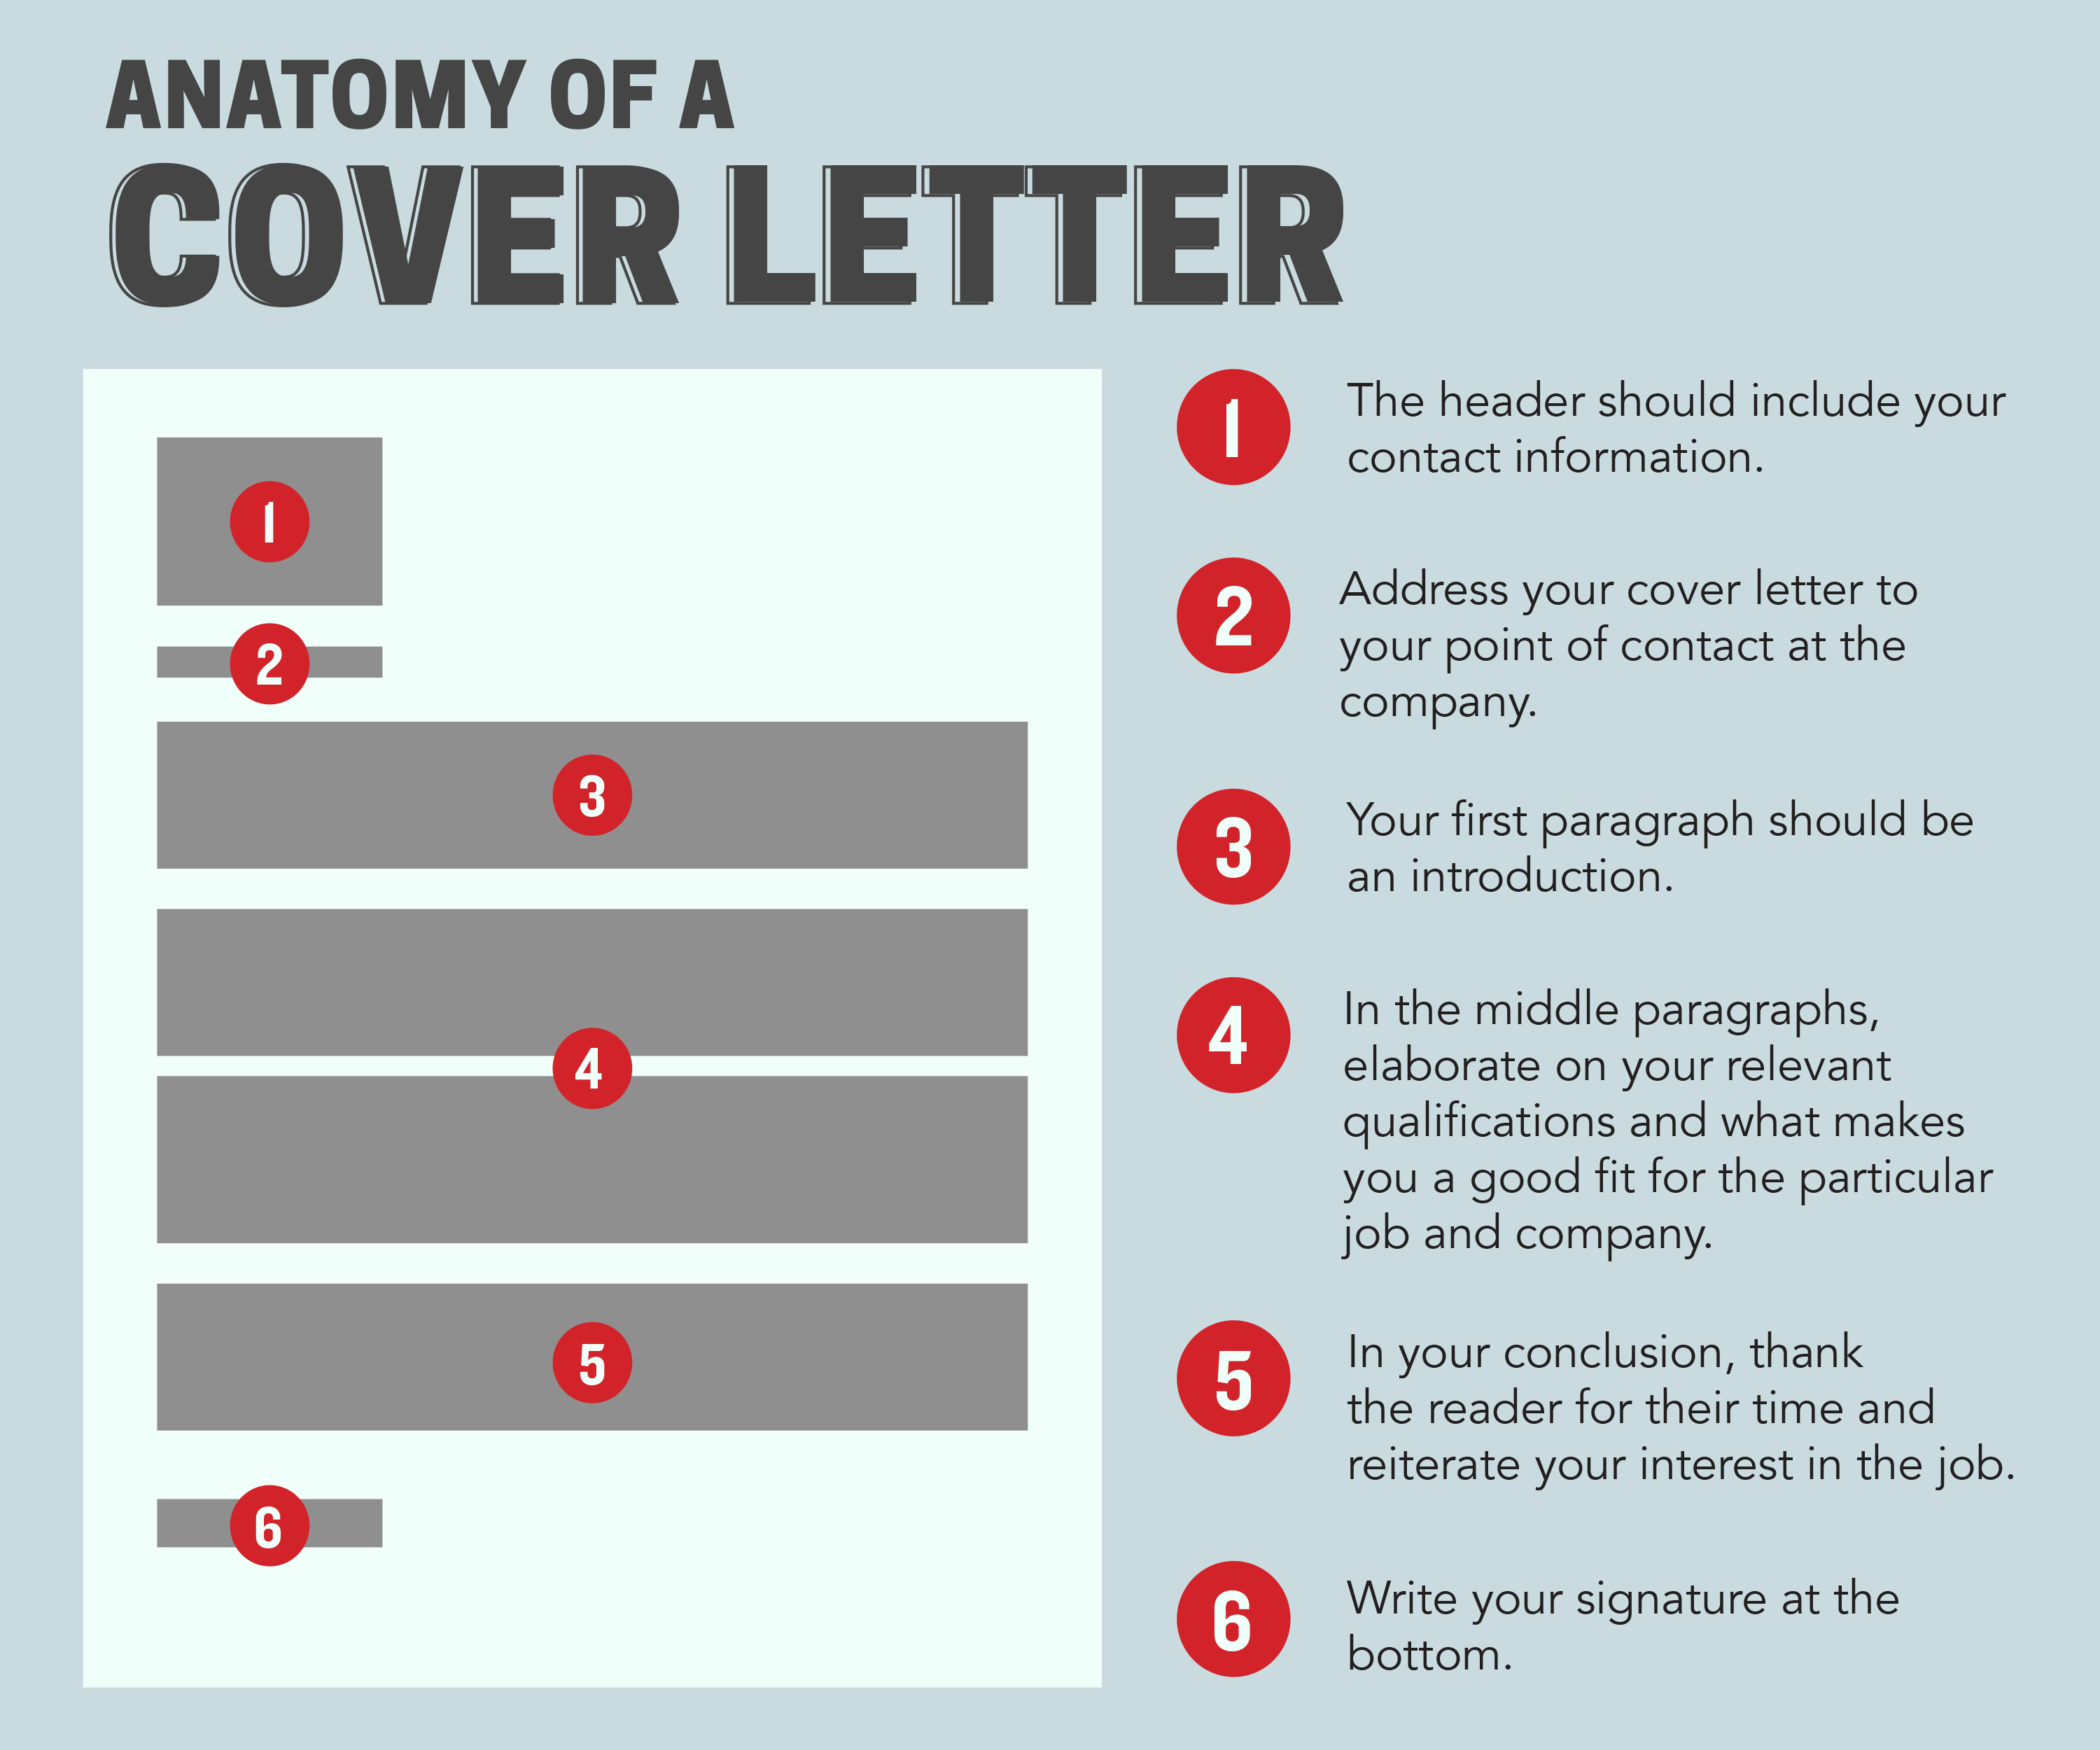 Career chasing: How to write a cover letter as a student - Columbia ...